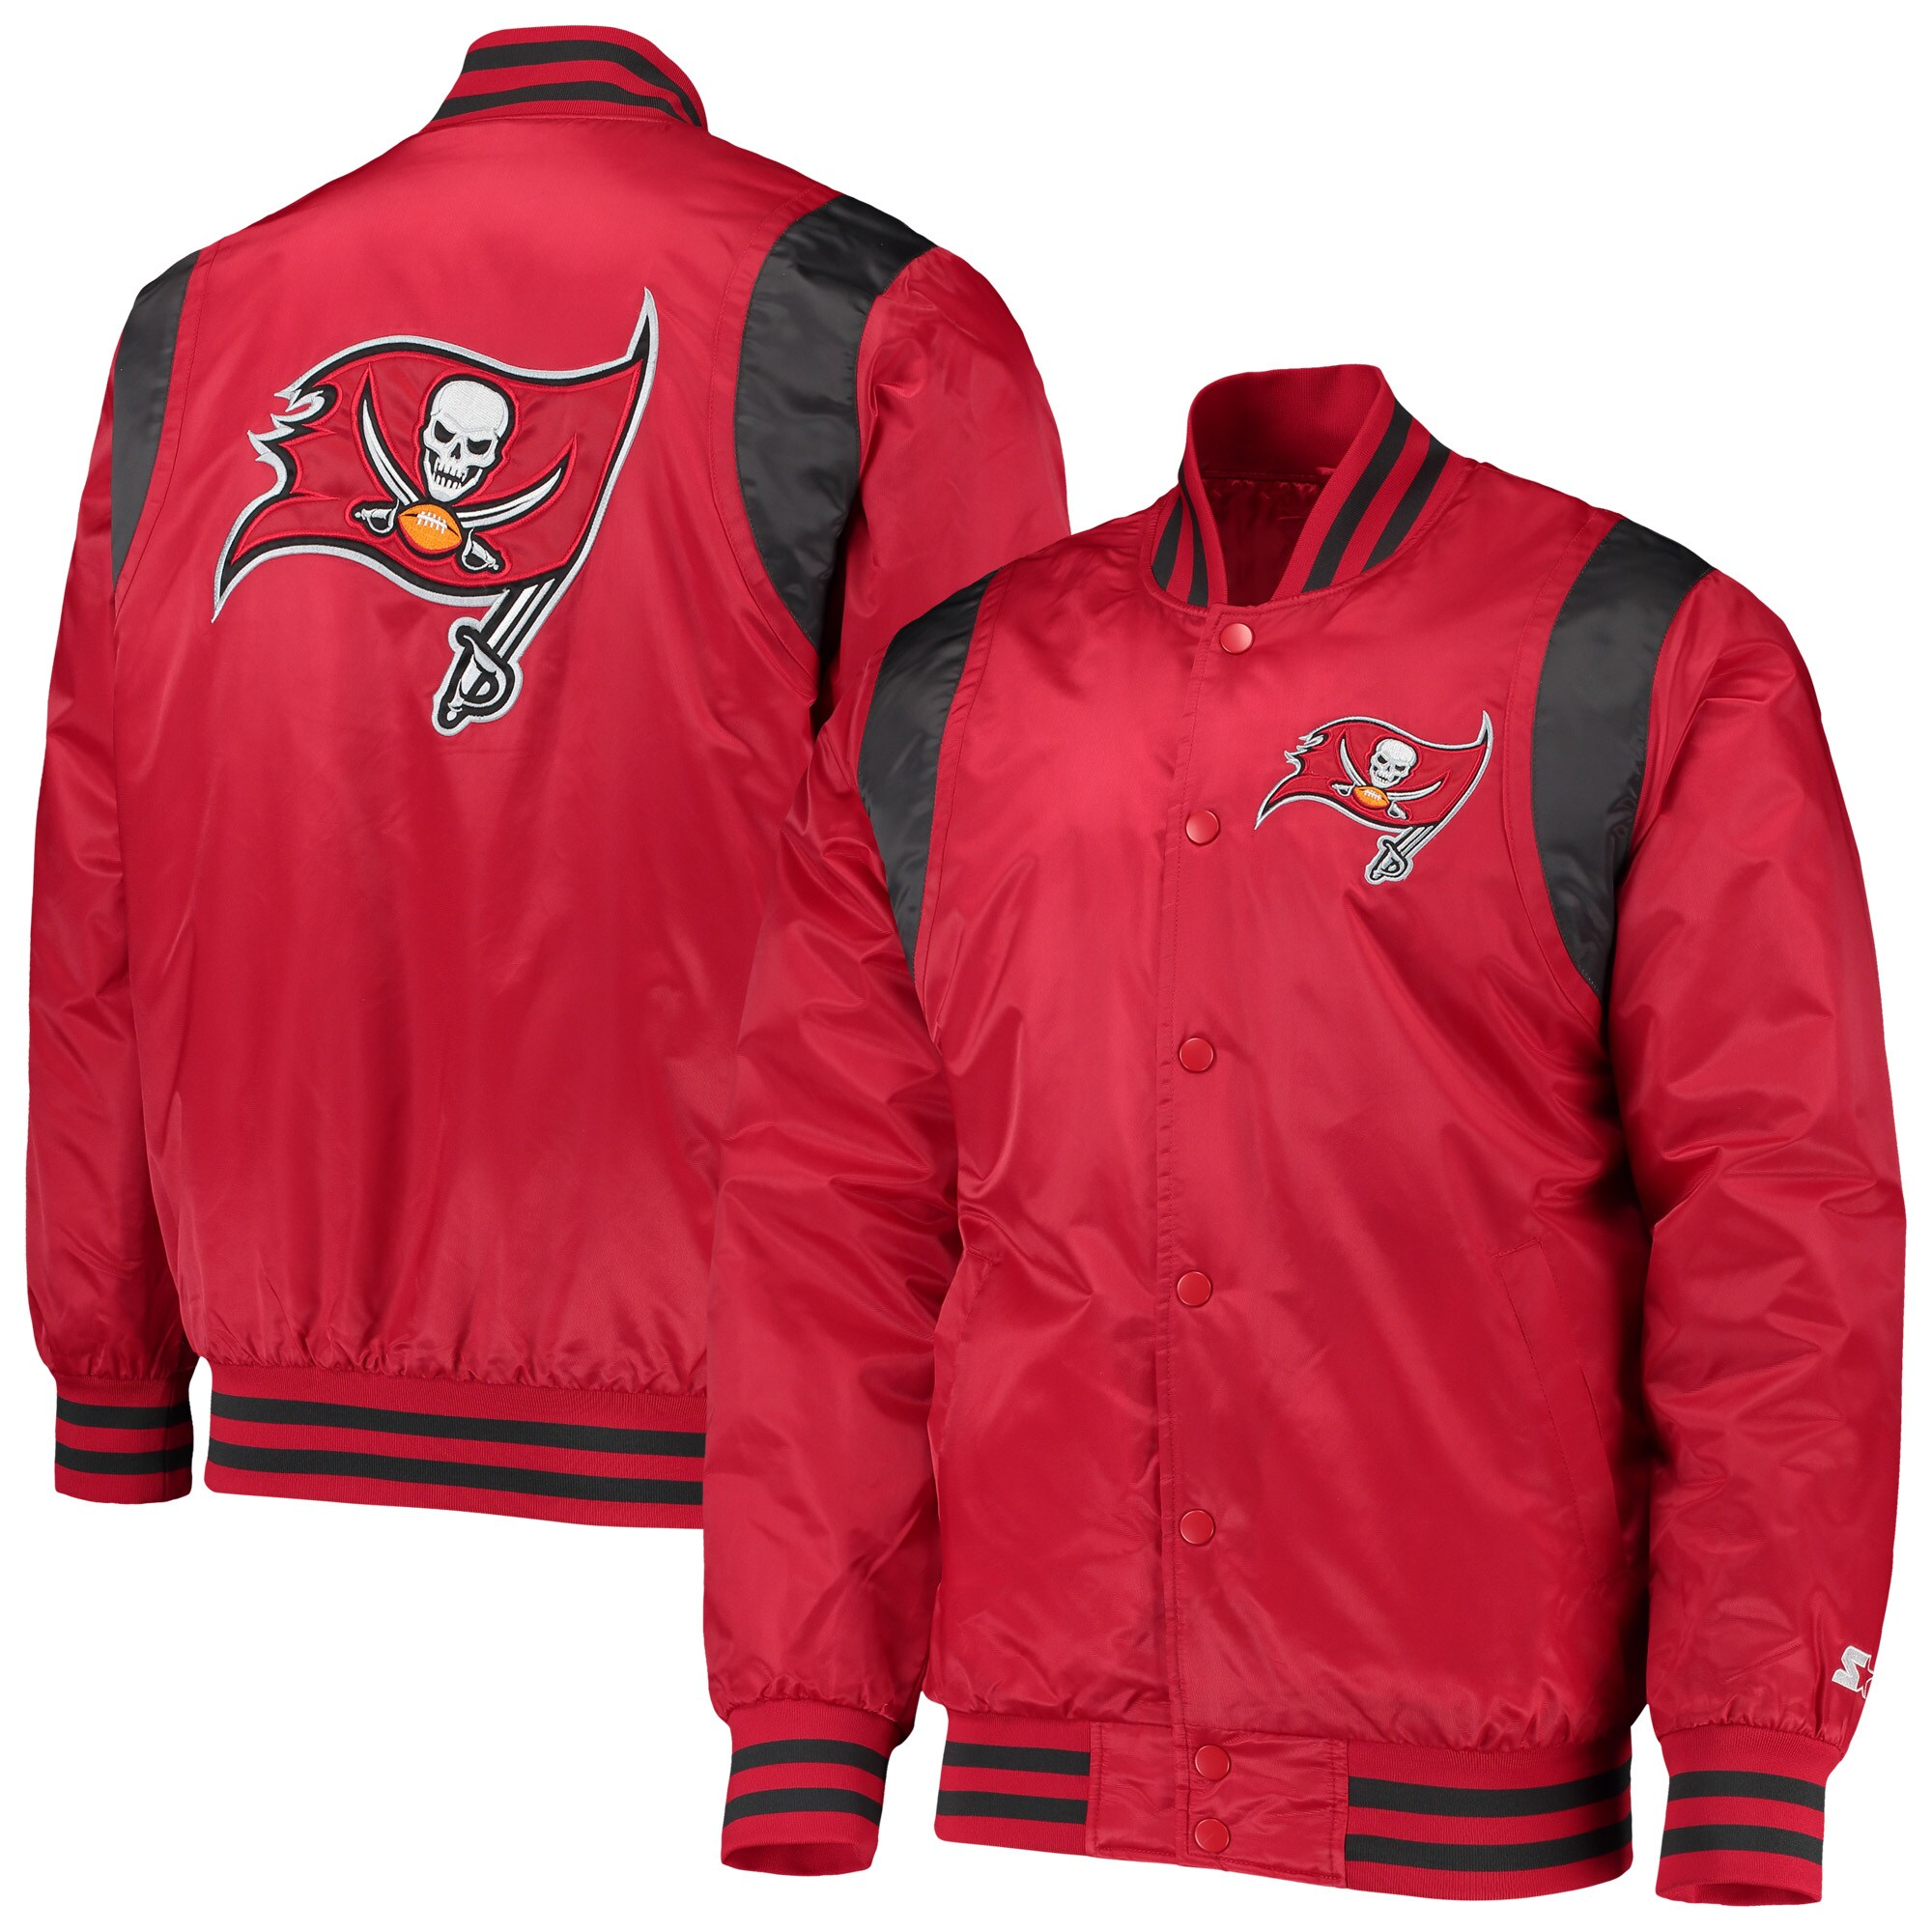 Tampa Bay Buccaneers Starter Prime Time Twill Satin Varsity Full-Snap Jacket - Red/Pewter